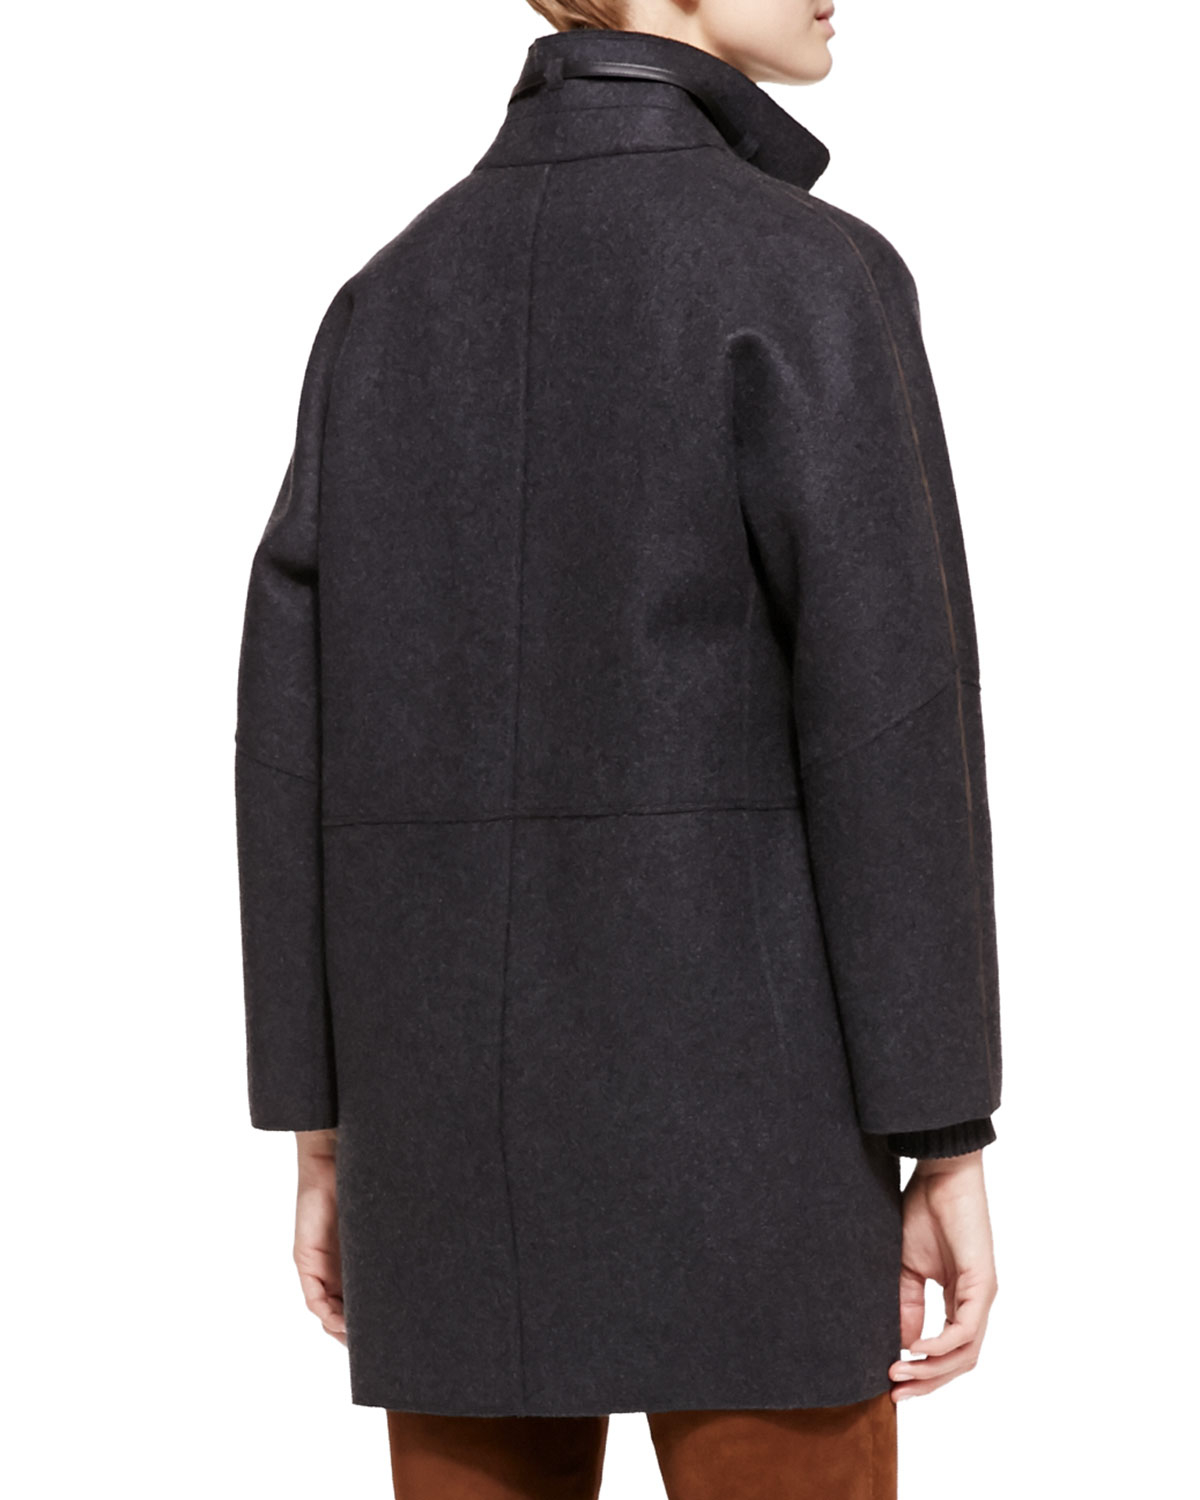 Loro piana Spencer Belted Cashmere Coat in Gray   Lyst